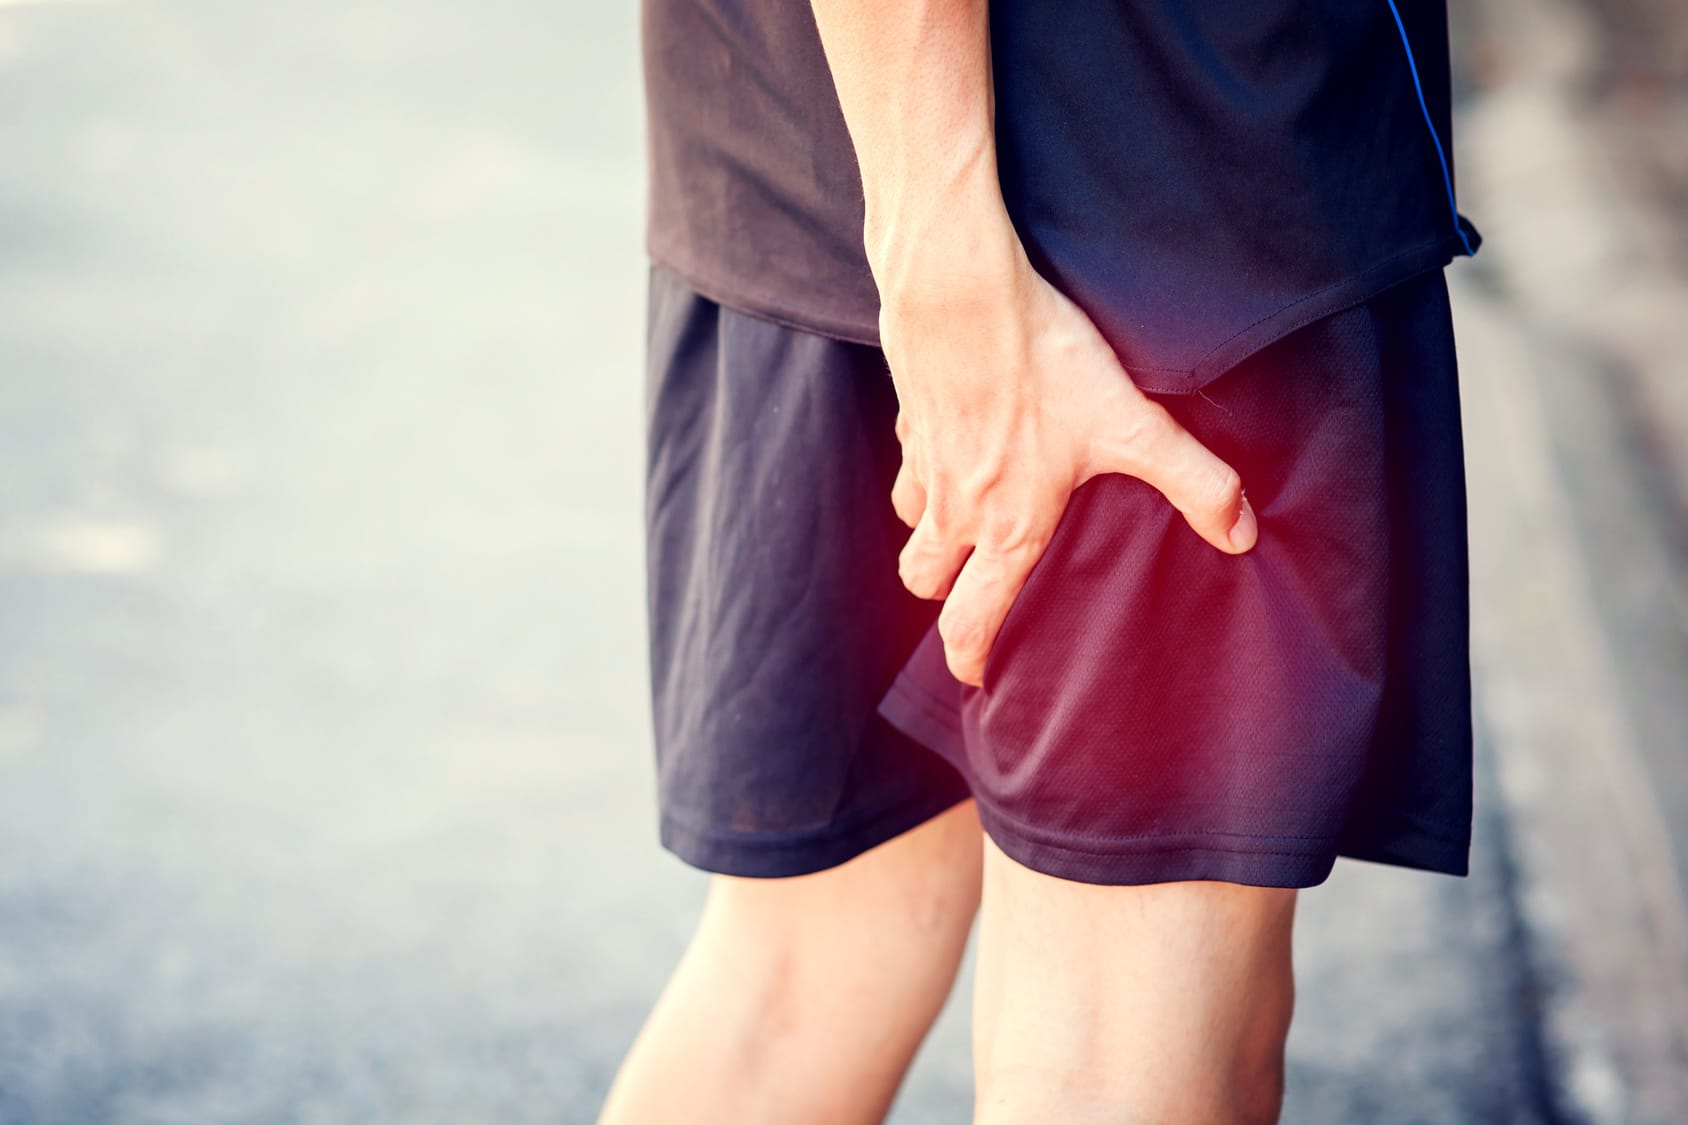 runner trying to Stop Muscle Soreness While Running